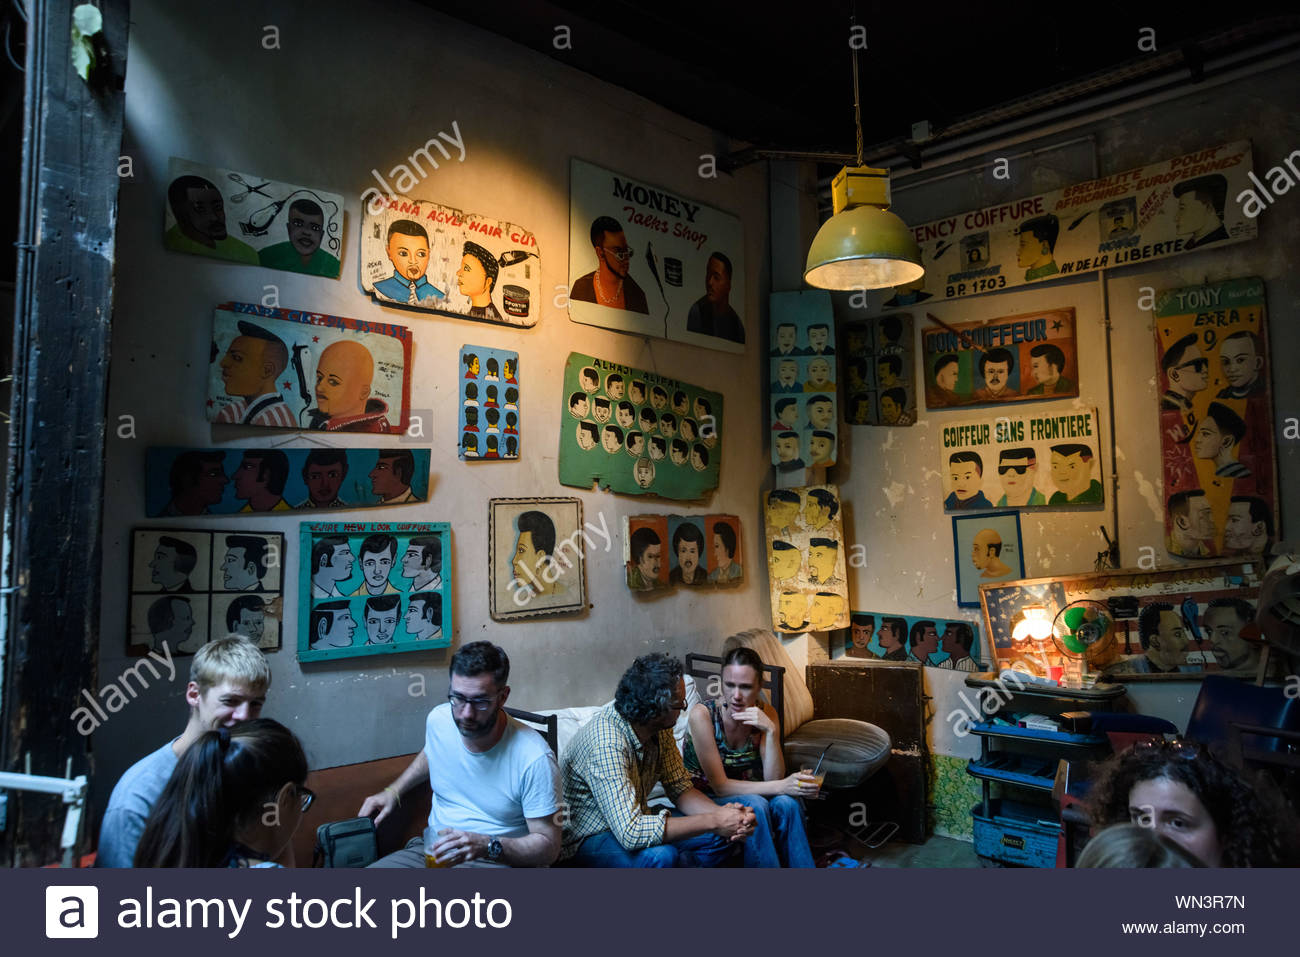 Paris, Bar-Restaurant Le Comptoir General Stock Photo ...